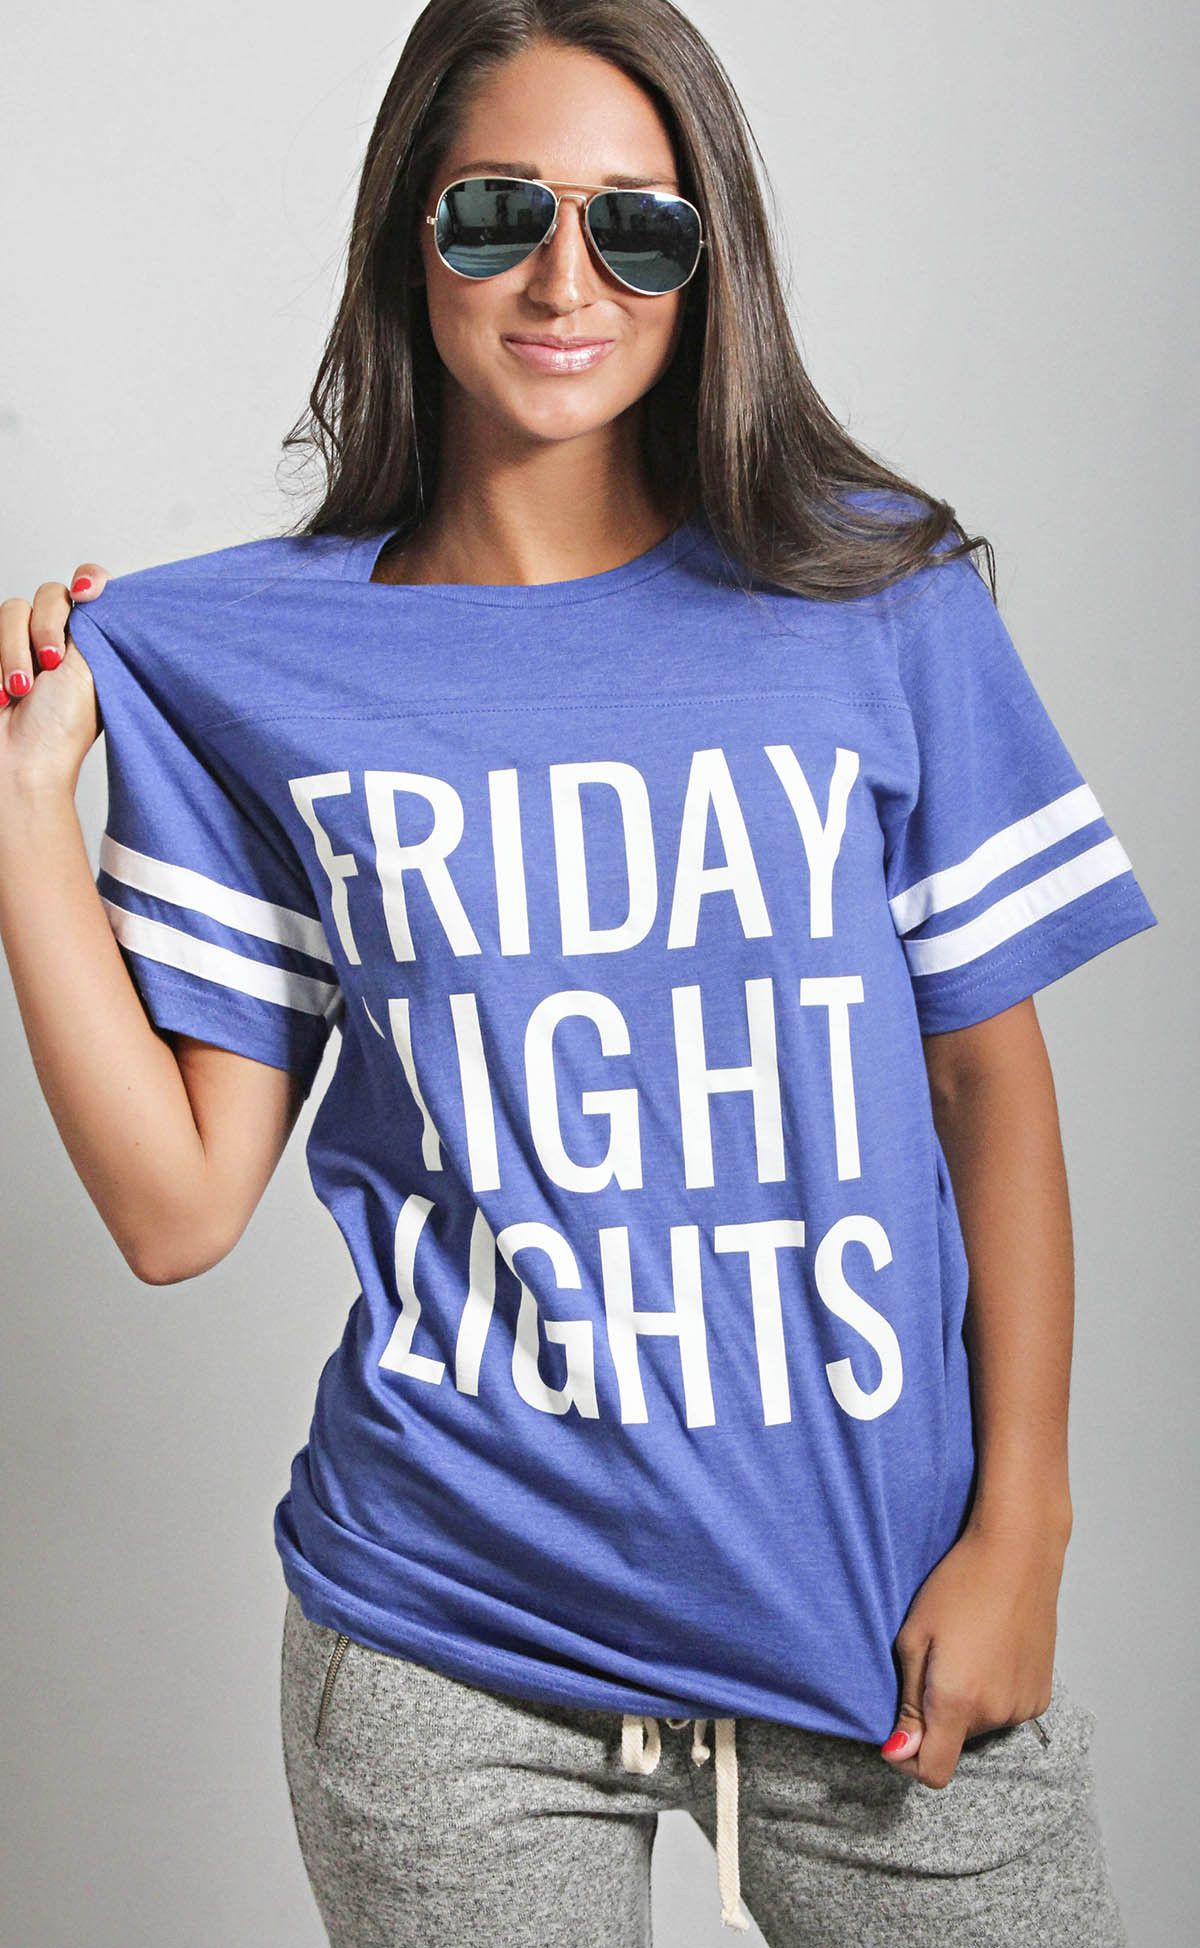 Black light t shirt ideas - Show Your Friday Night Lights Pride In This T Shirt We Love Fnl Around Here And This New T Shirt Is One Of Our Favorites It Features White Ink On A Royal